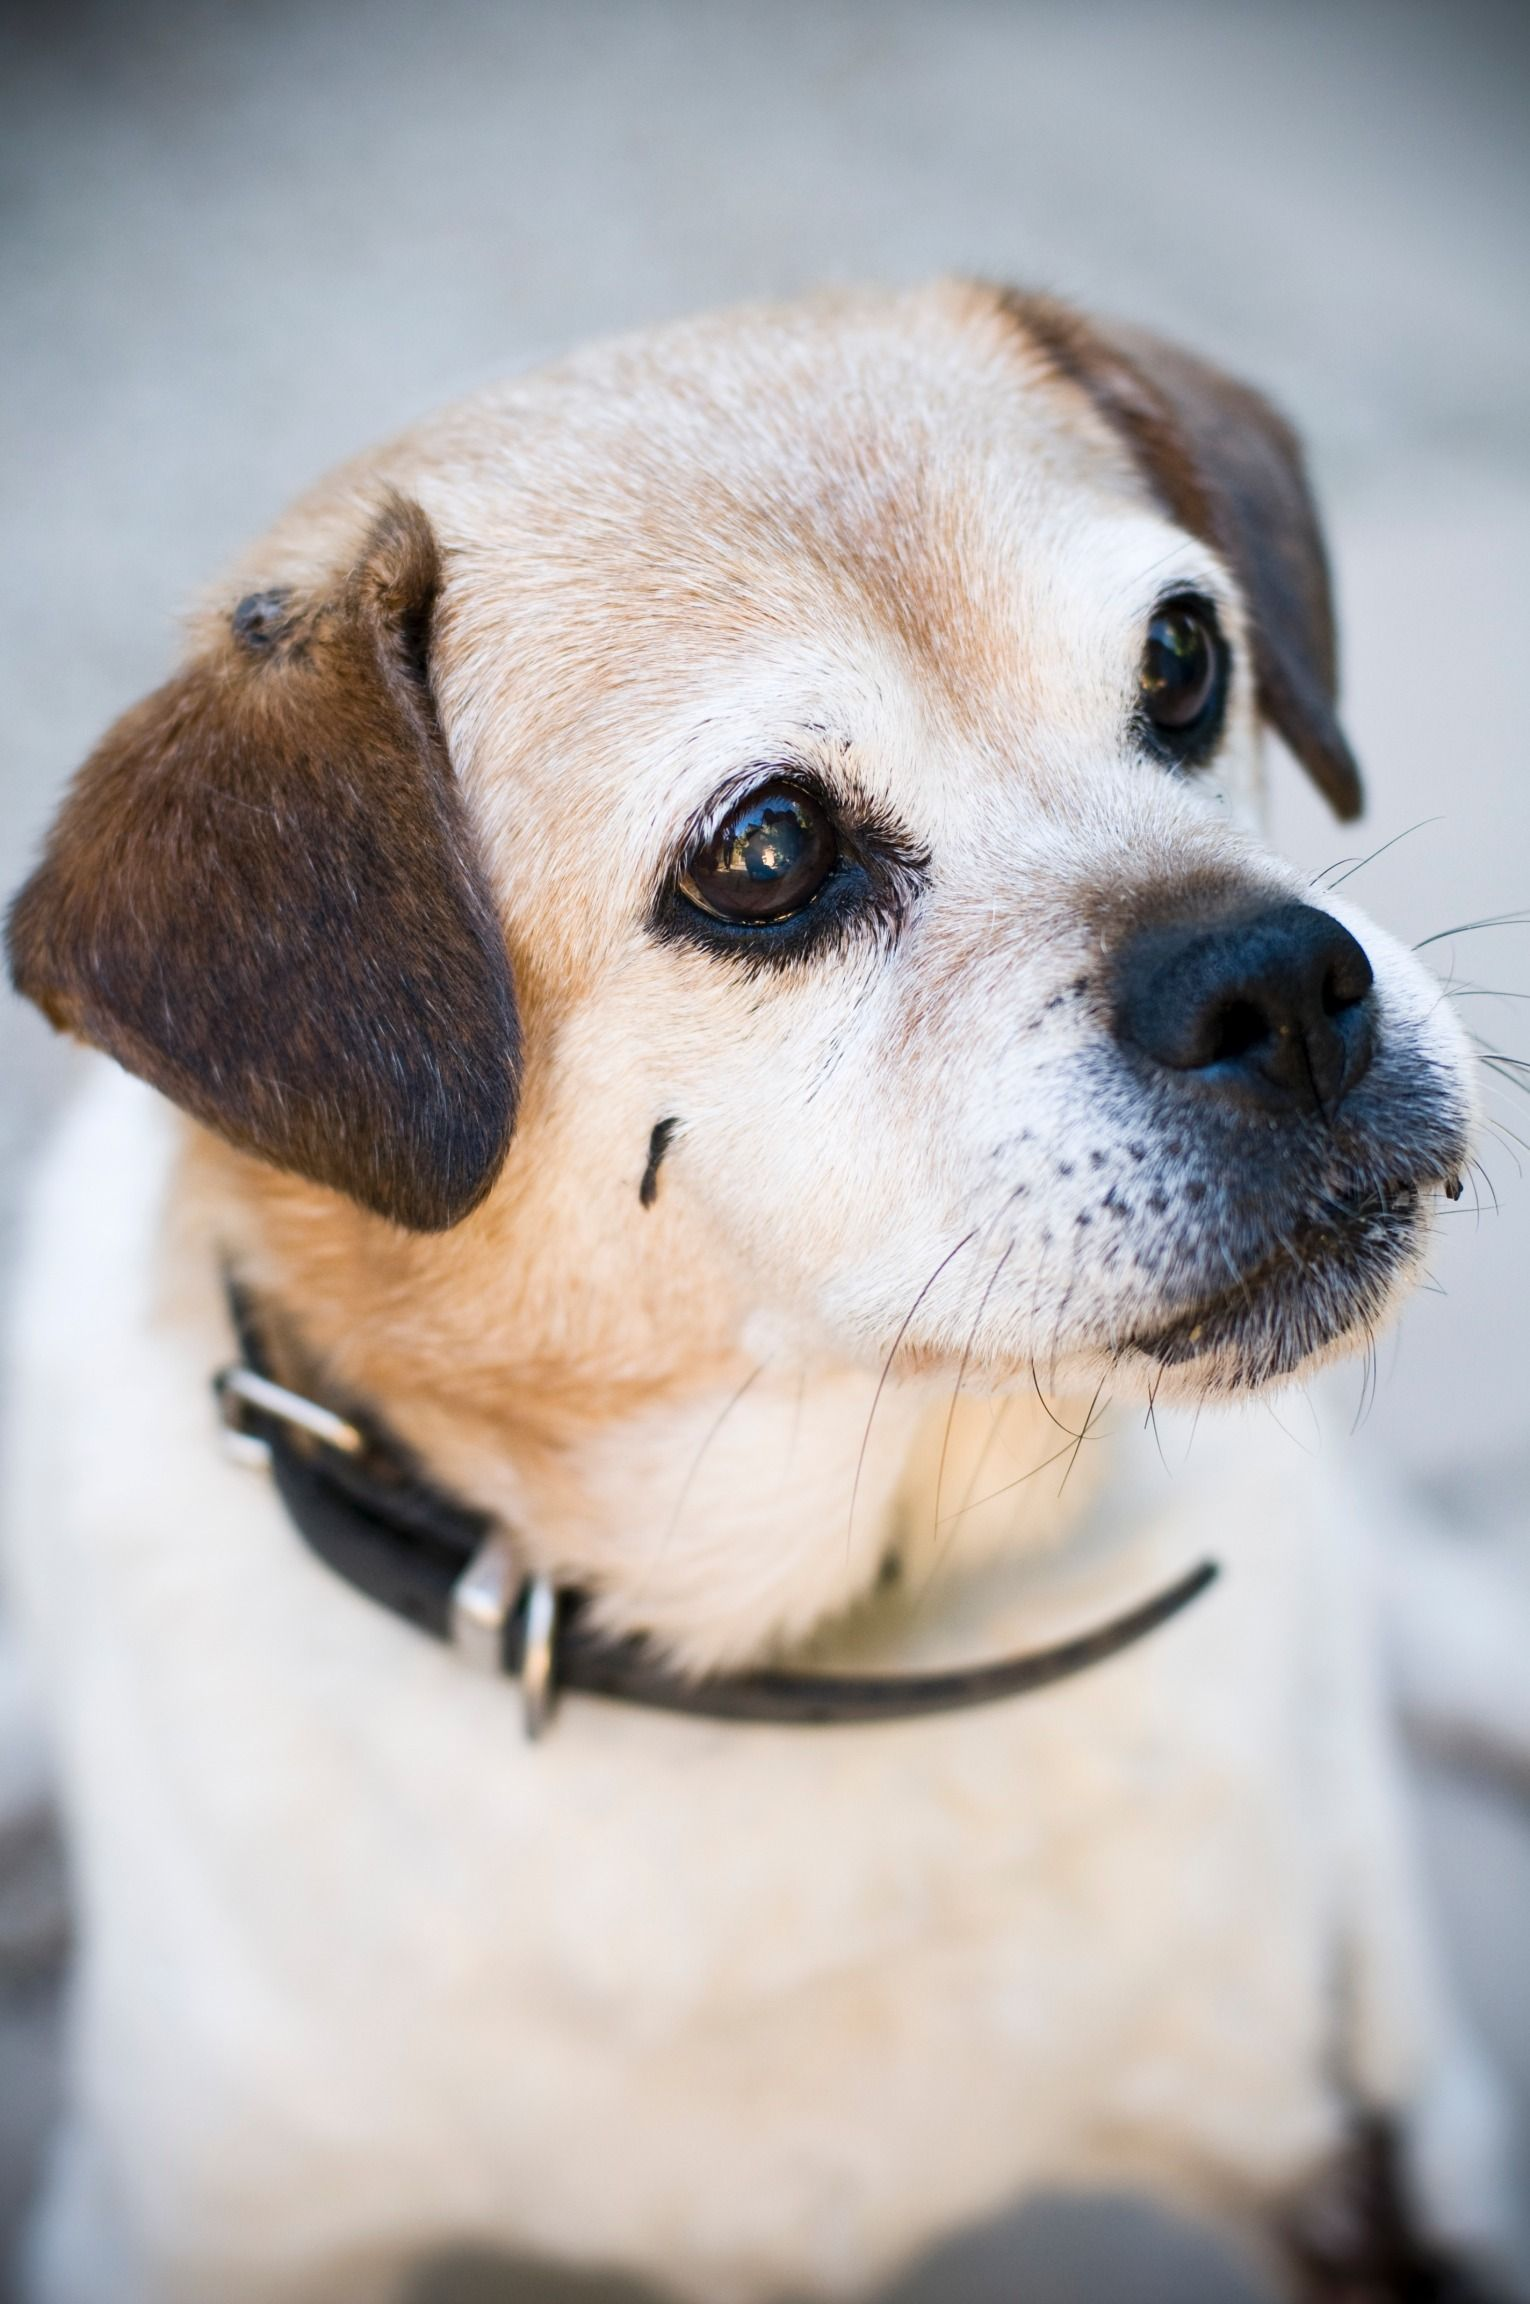 This Life Threatening Condition Is Fairly Common In Dogs And Cats